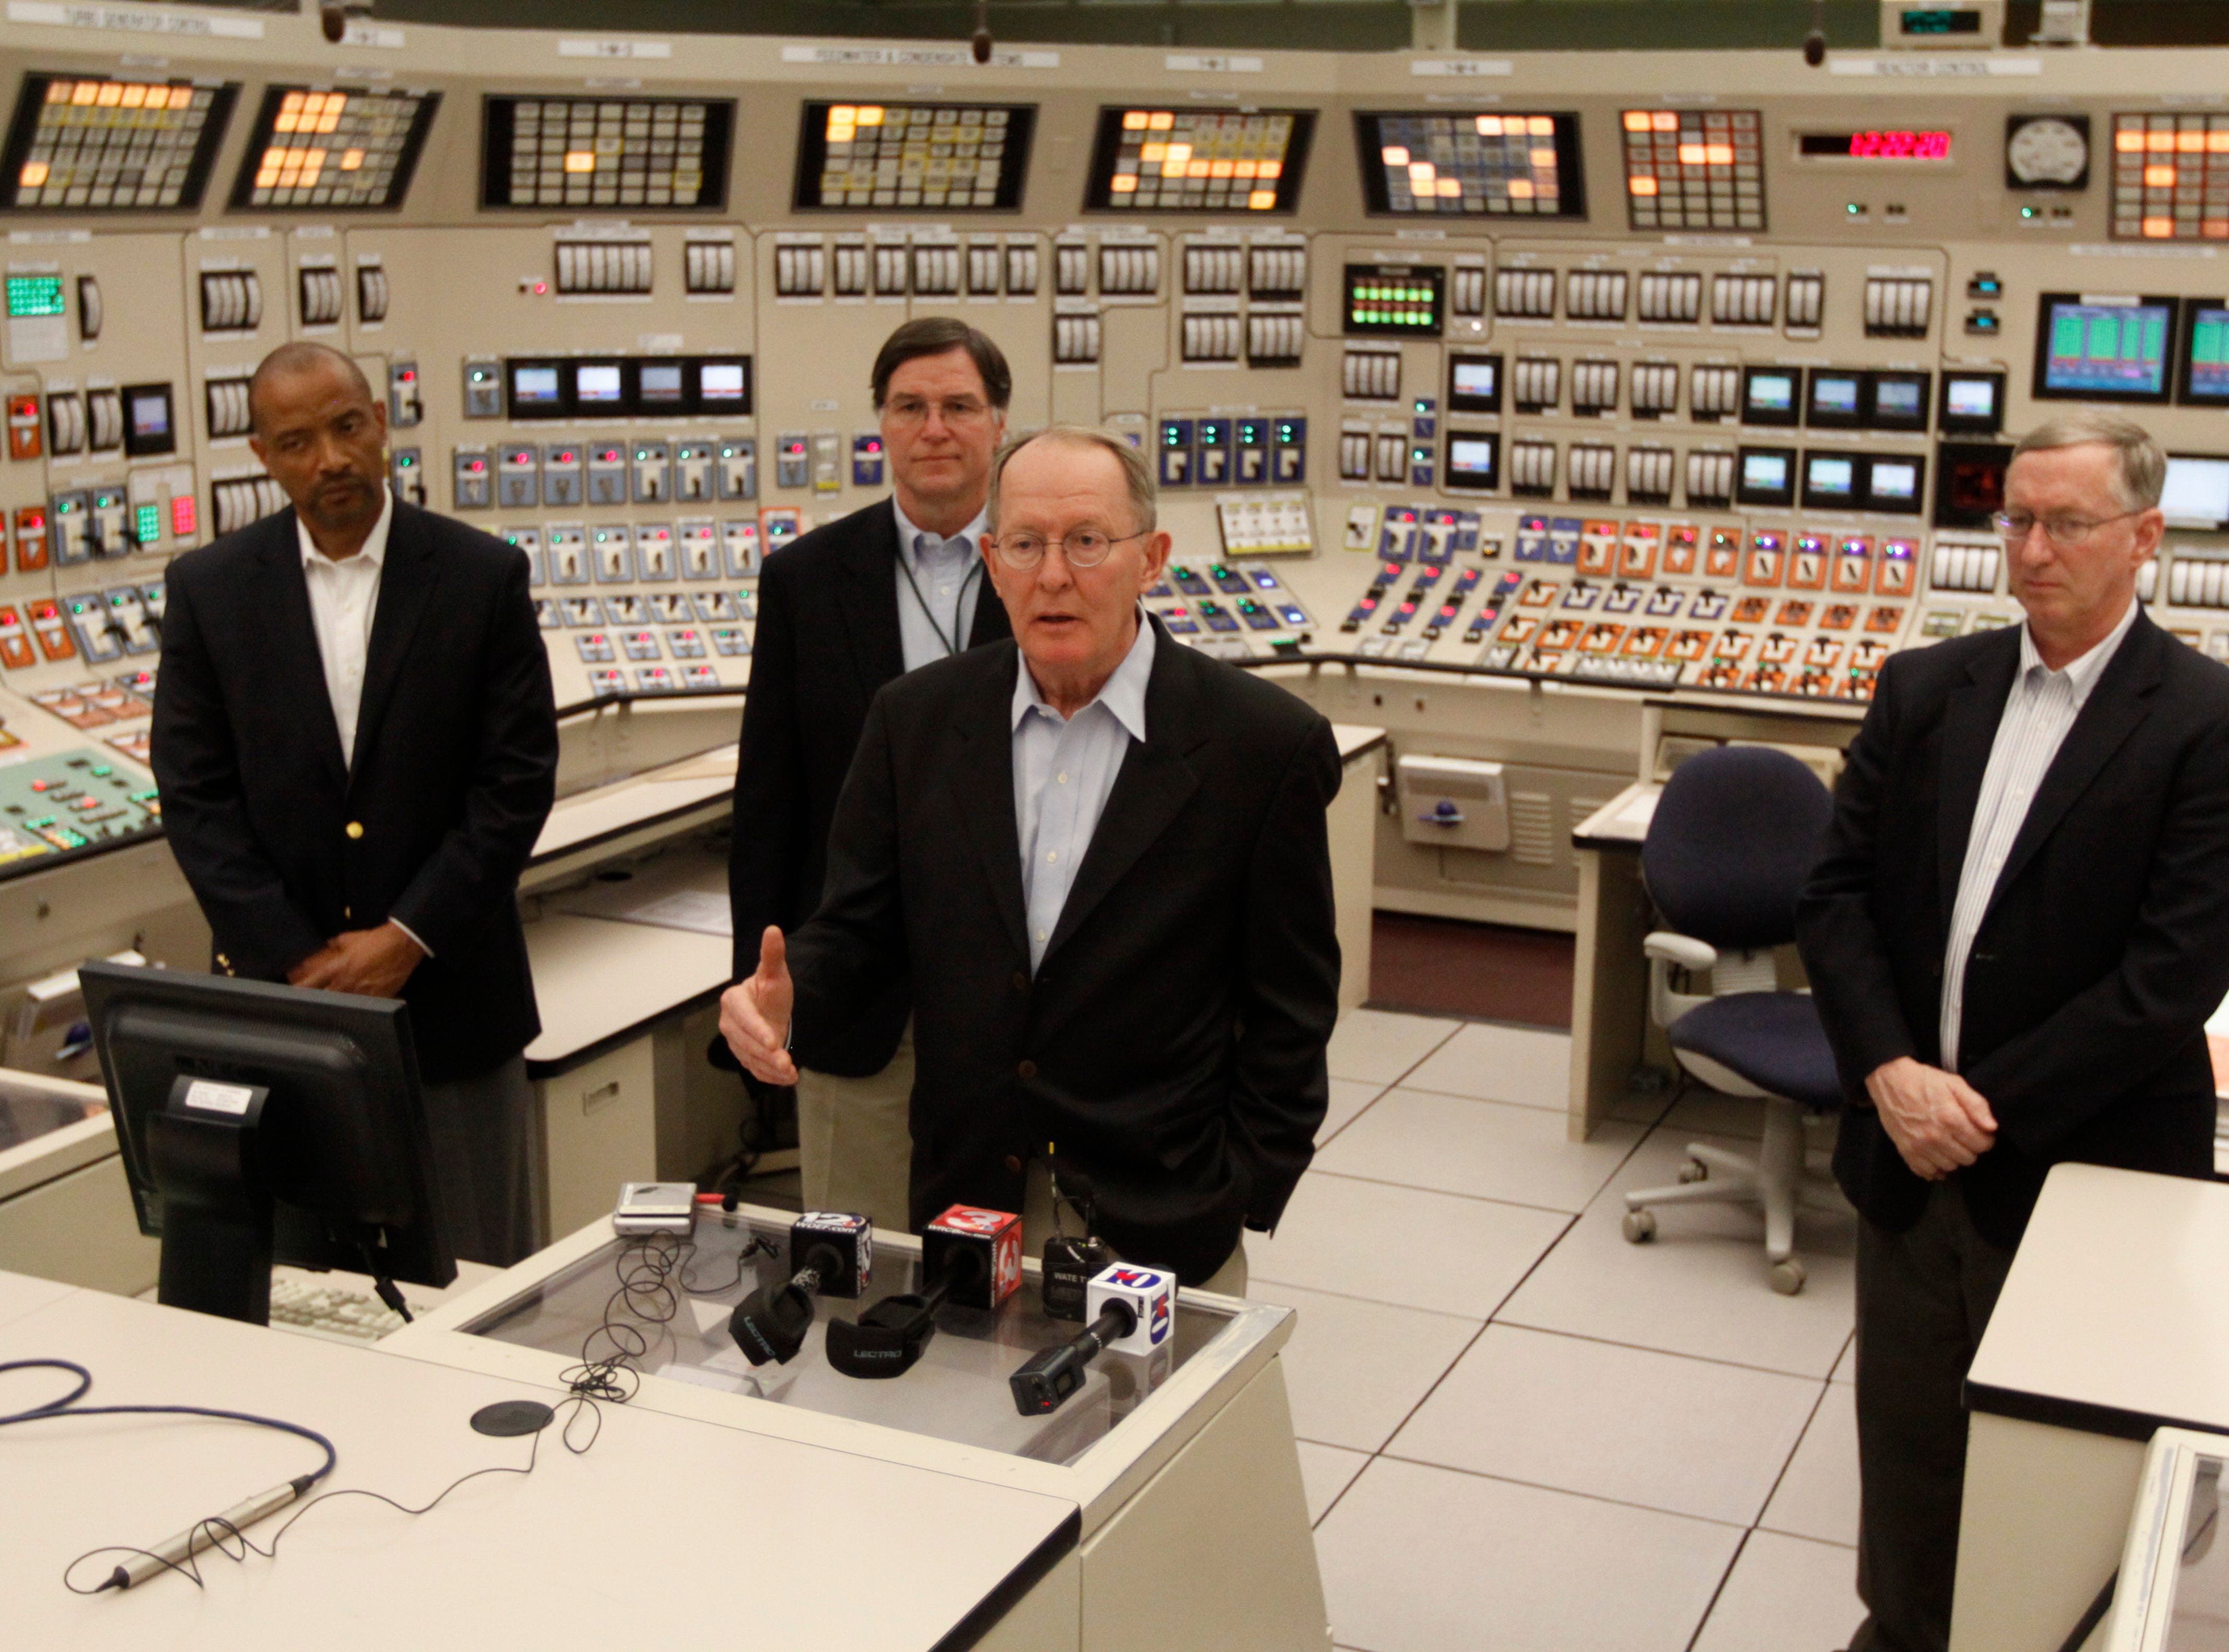 Victor McCree with the Nuclear Regulatory Commission (NRC), TVA's COO Bill McCollum, Sen. Lamar Alexander (R-Tenn.) and Bill Ostendorff of the Nuclear Regulatory Commission (NRC), from left, visit the Watts Bar nuclear plant to discuss reactor and nuclear material safety in the U.S. early Monday afternoon. Watts Bar is currently completing work on a second reactor which is the only new reactor under construction in the country.